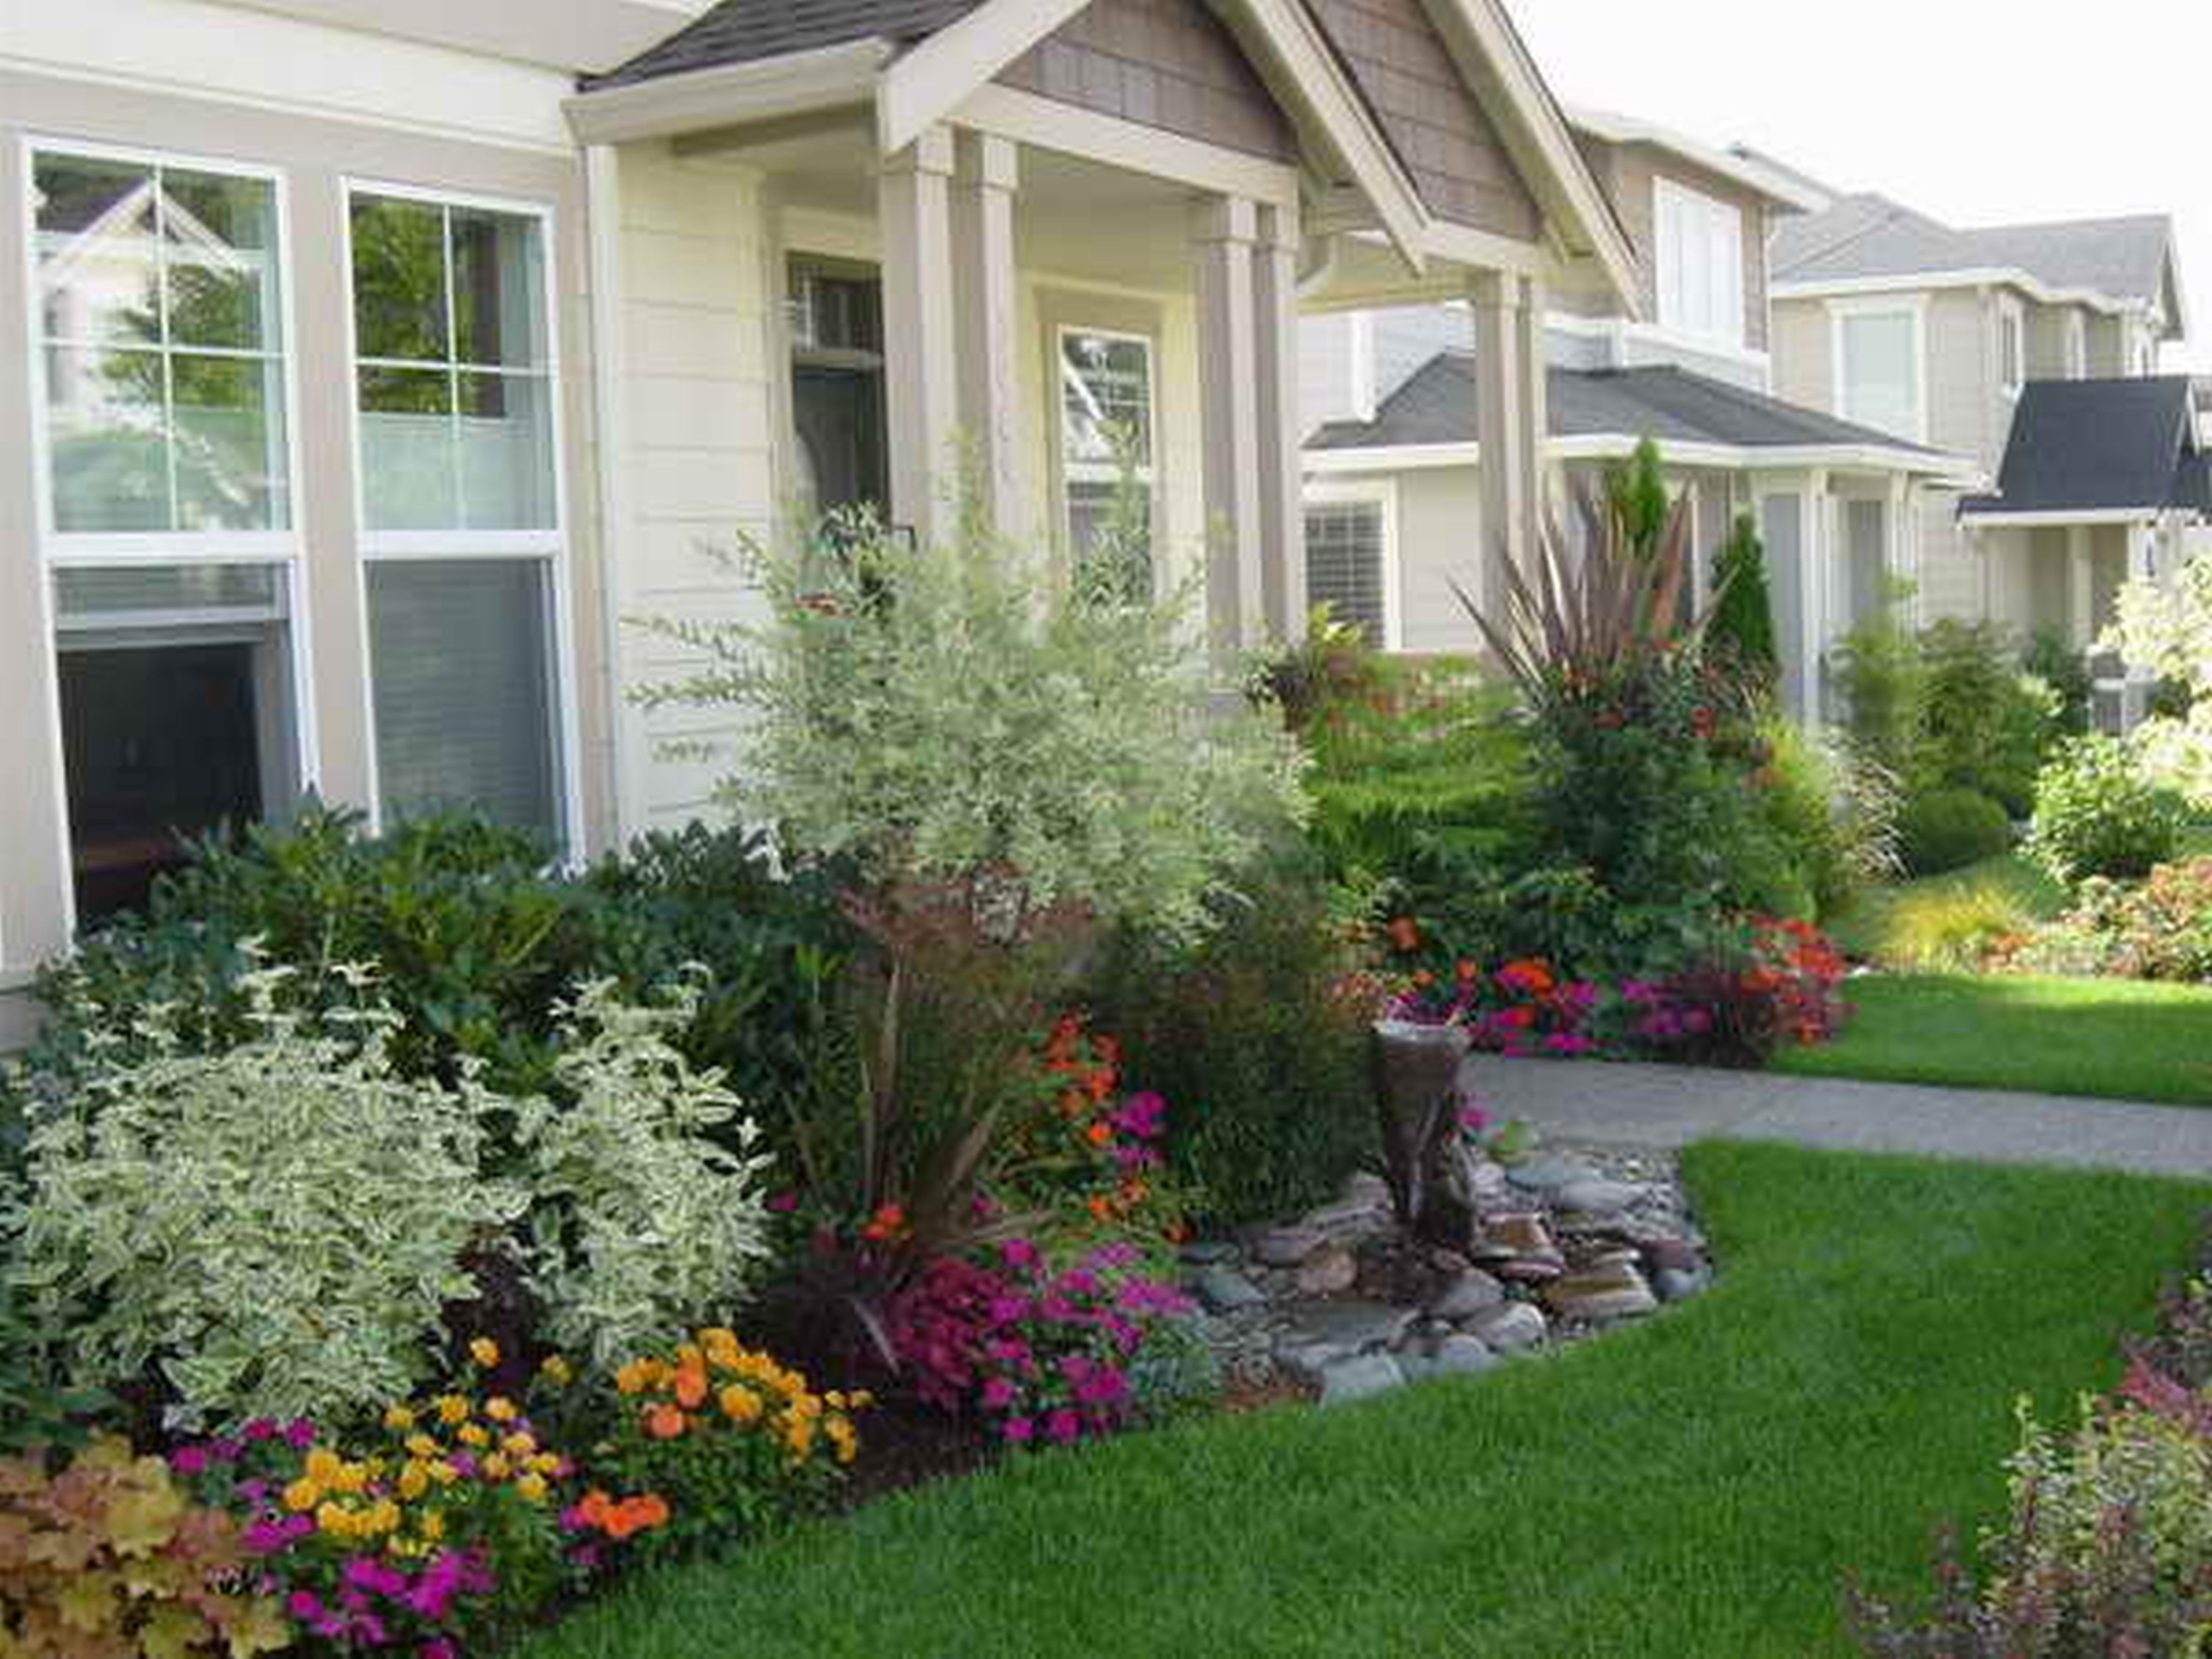 landscaping rocks for sale cleveland ohio and landscaping rock for